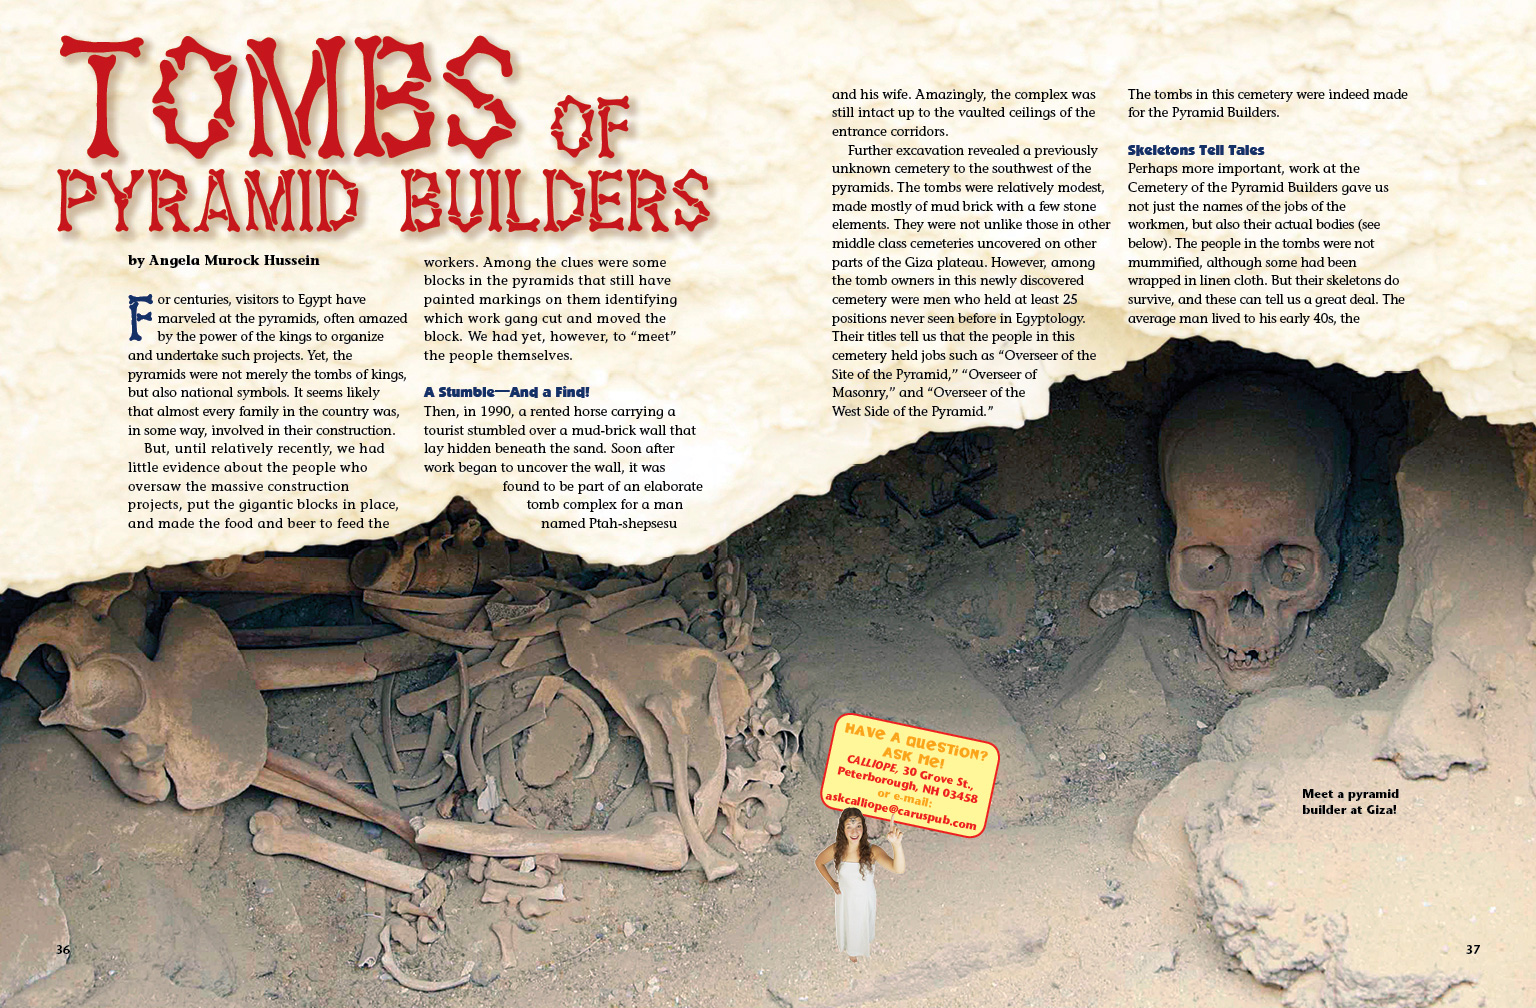 Tombs of Pyramid Builders